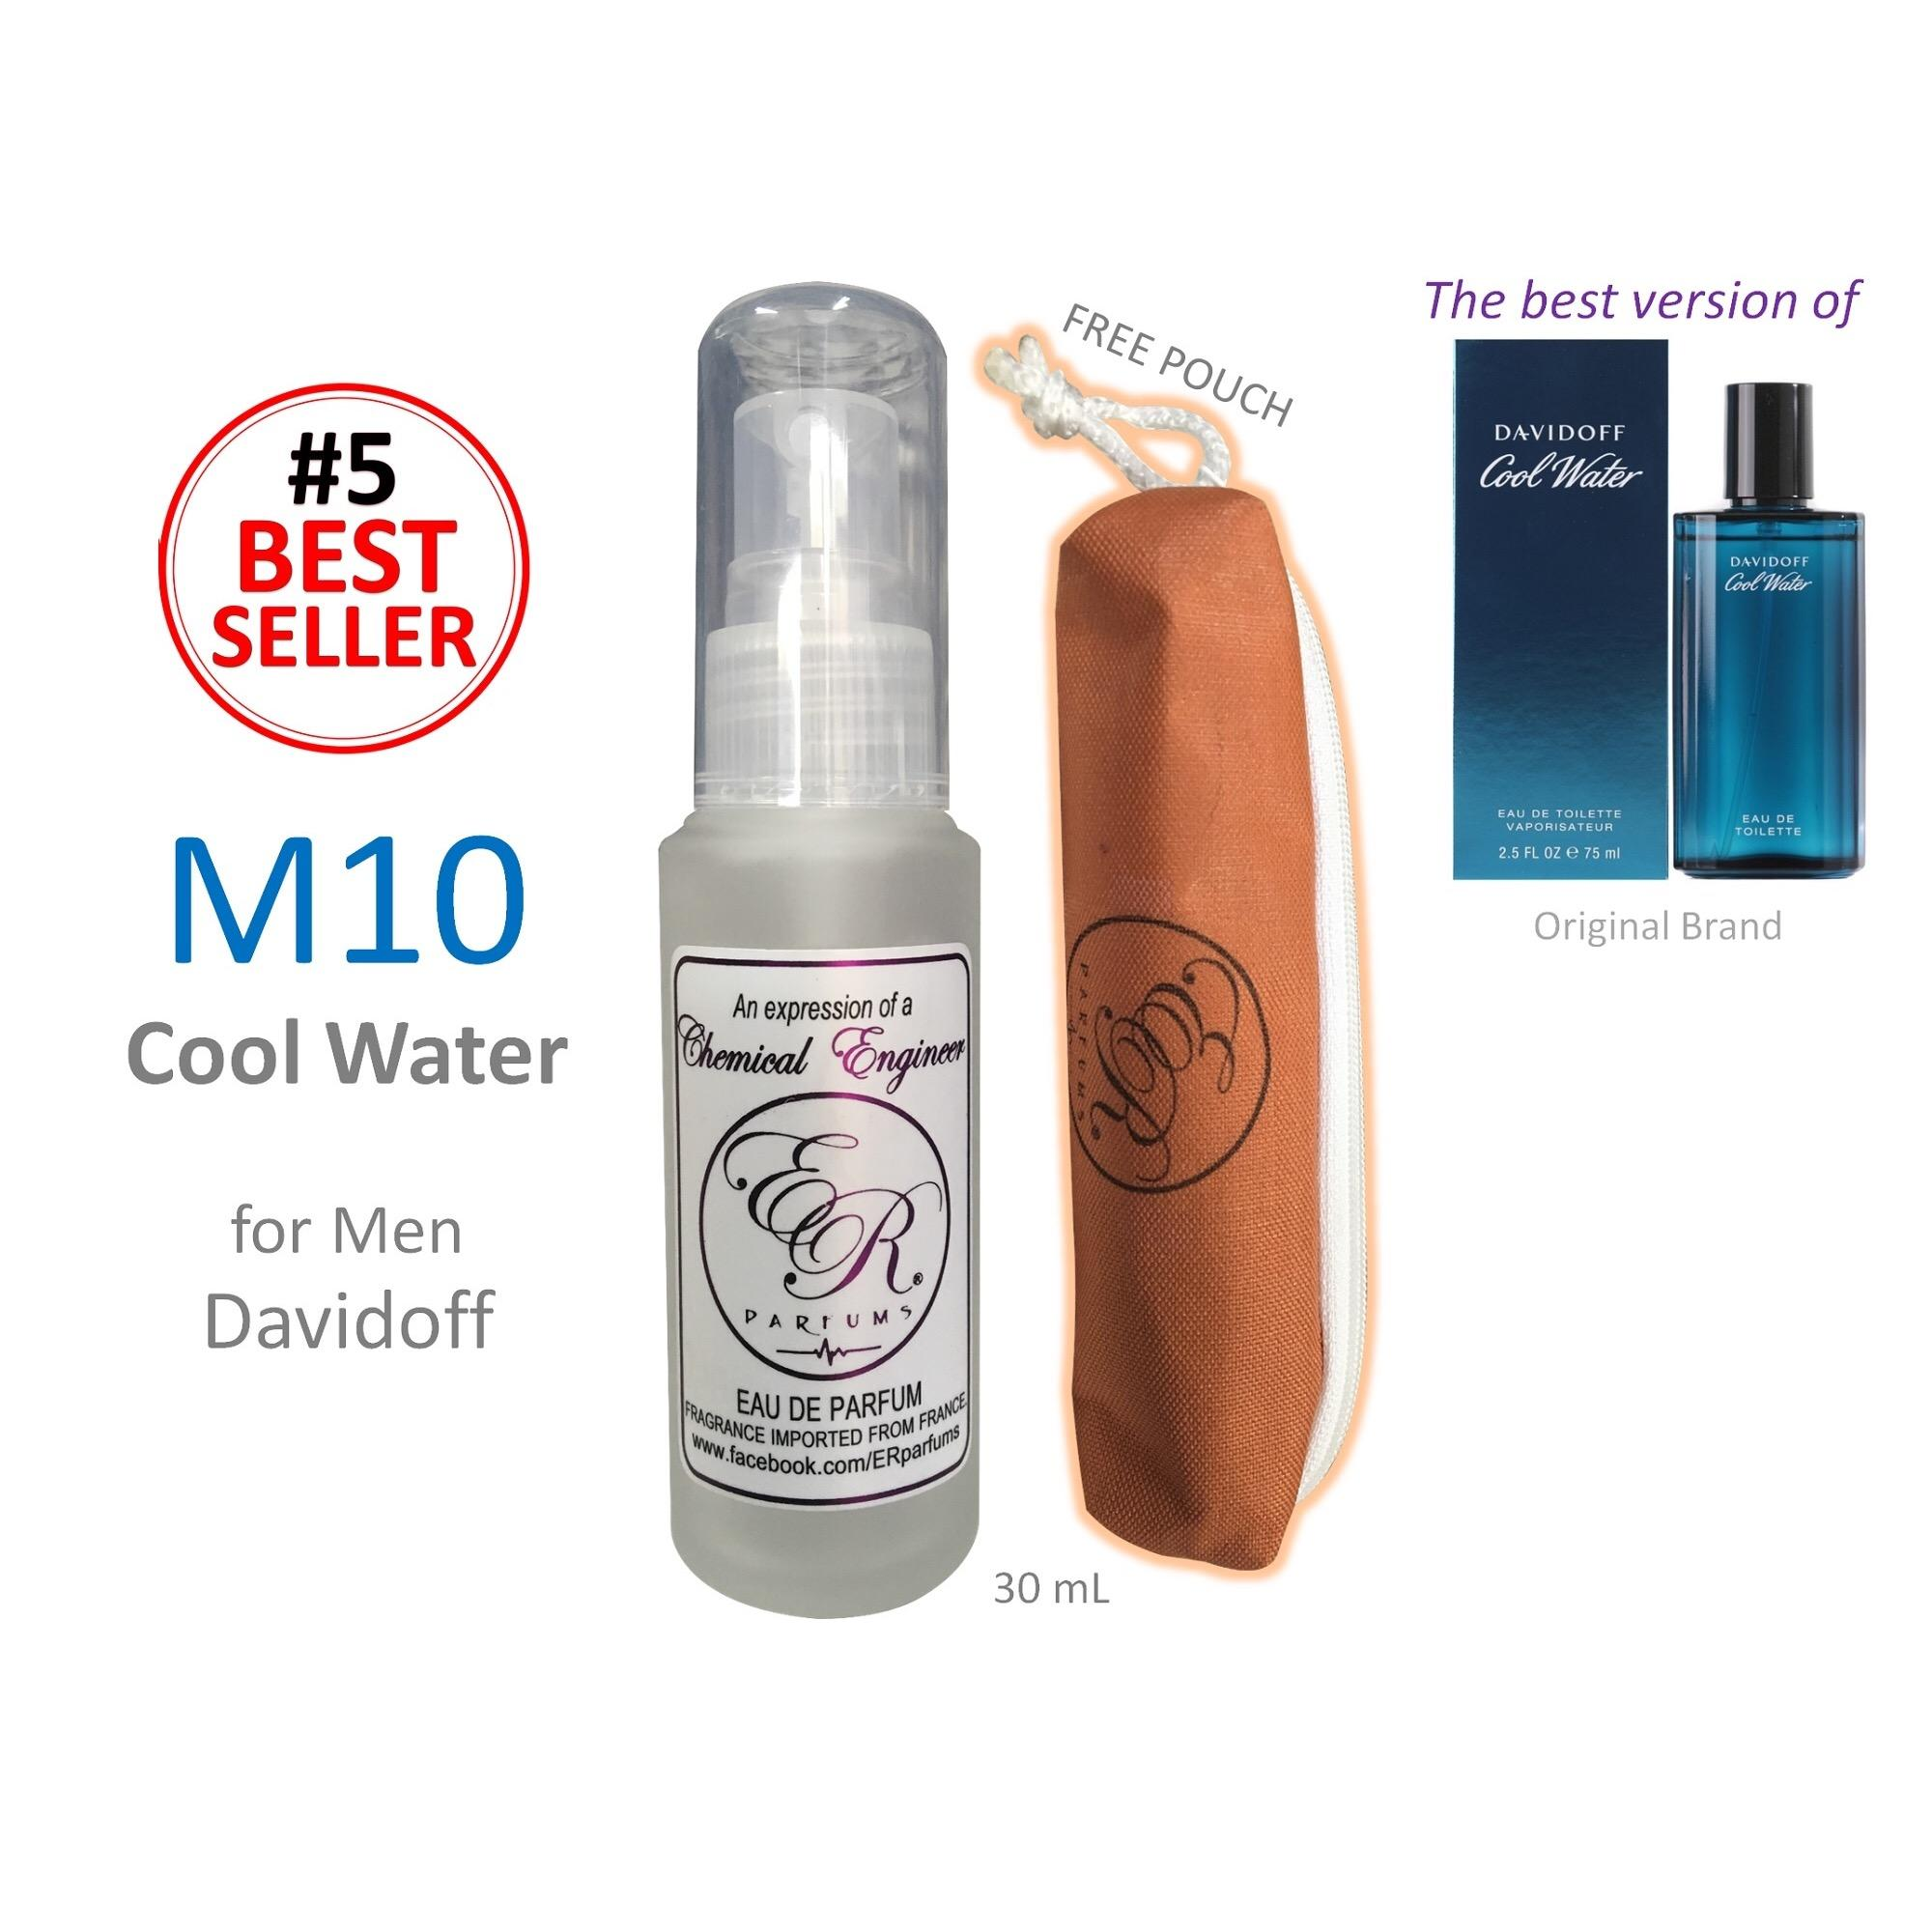 ER PARFUMS M10 Cool Water for Men by Davidoff 1 piece 30 ml perfume with free pouch (Best Seller) - thumbnail